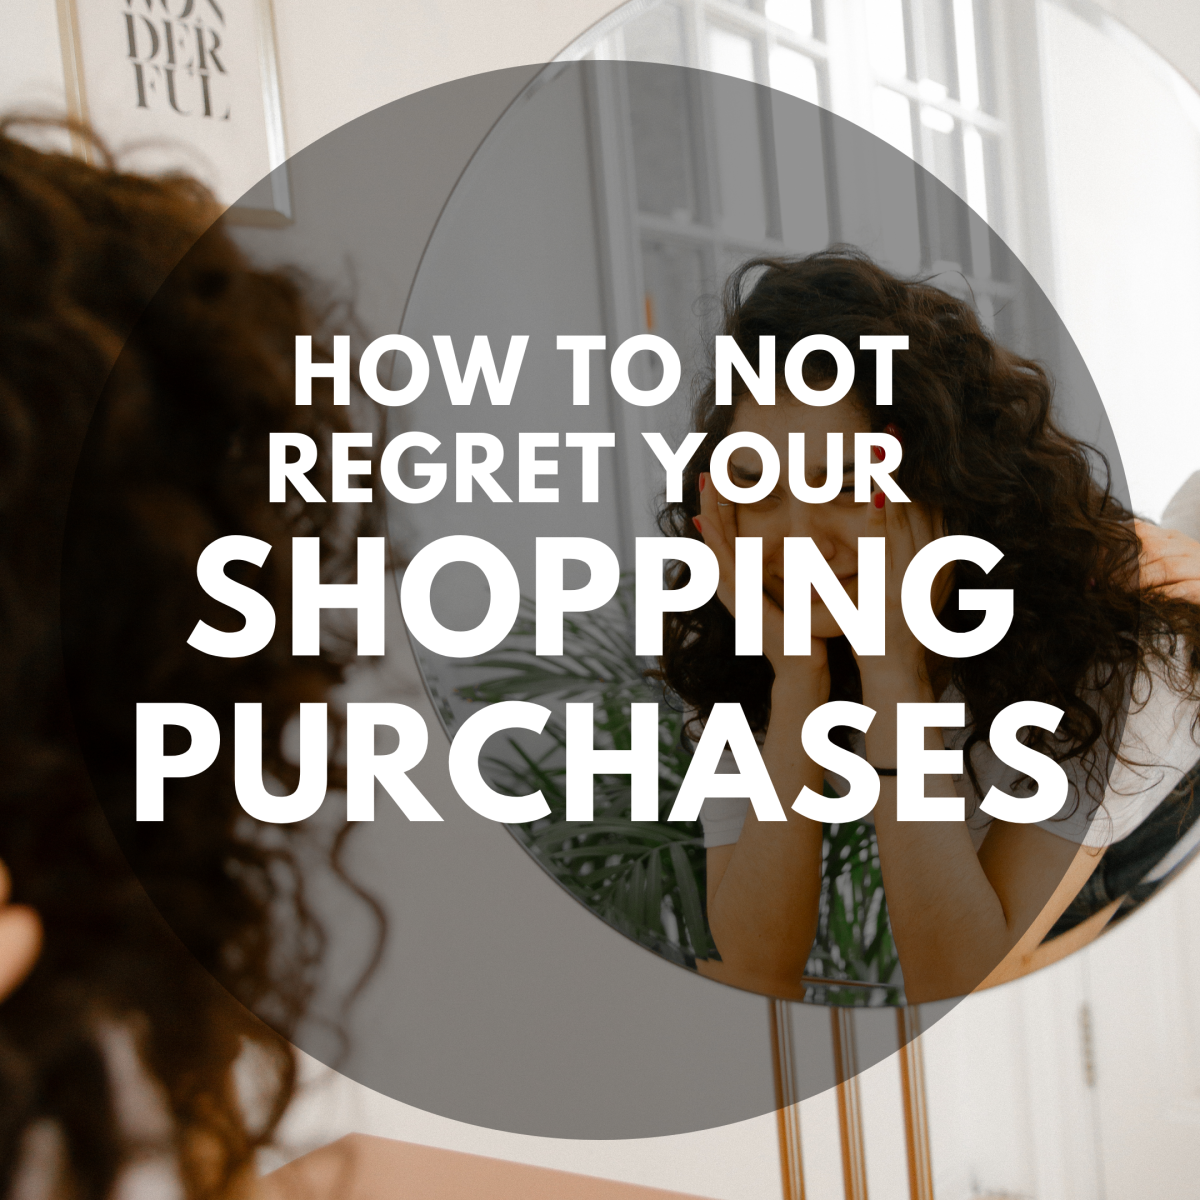 How to Not Regret Your Shopping Purchases